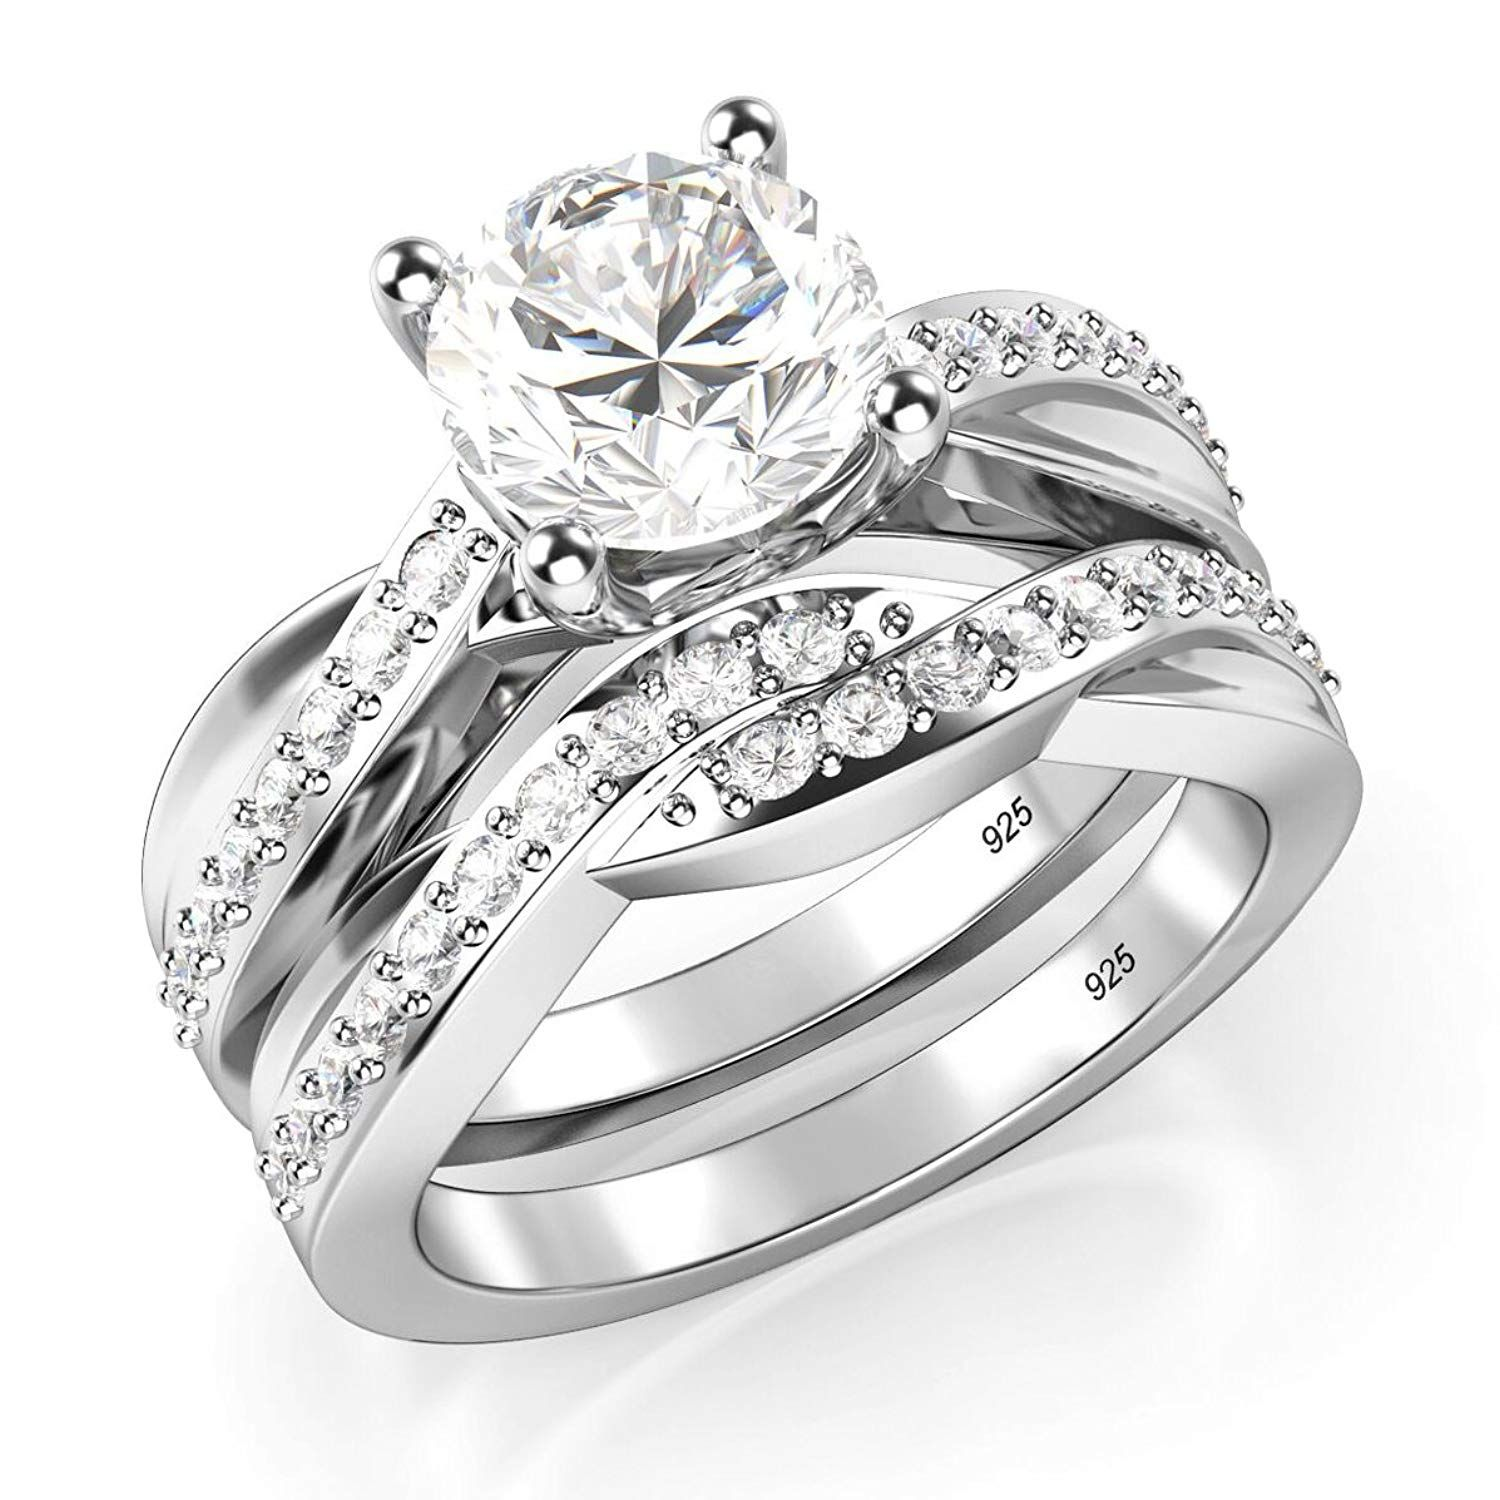 Pin on Engagement Rings